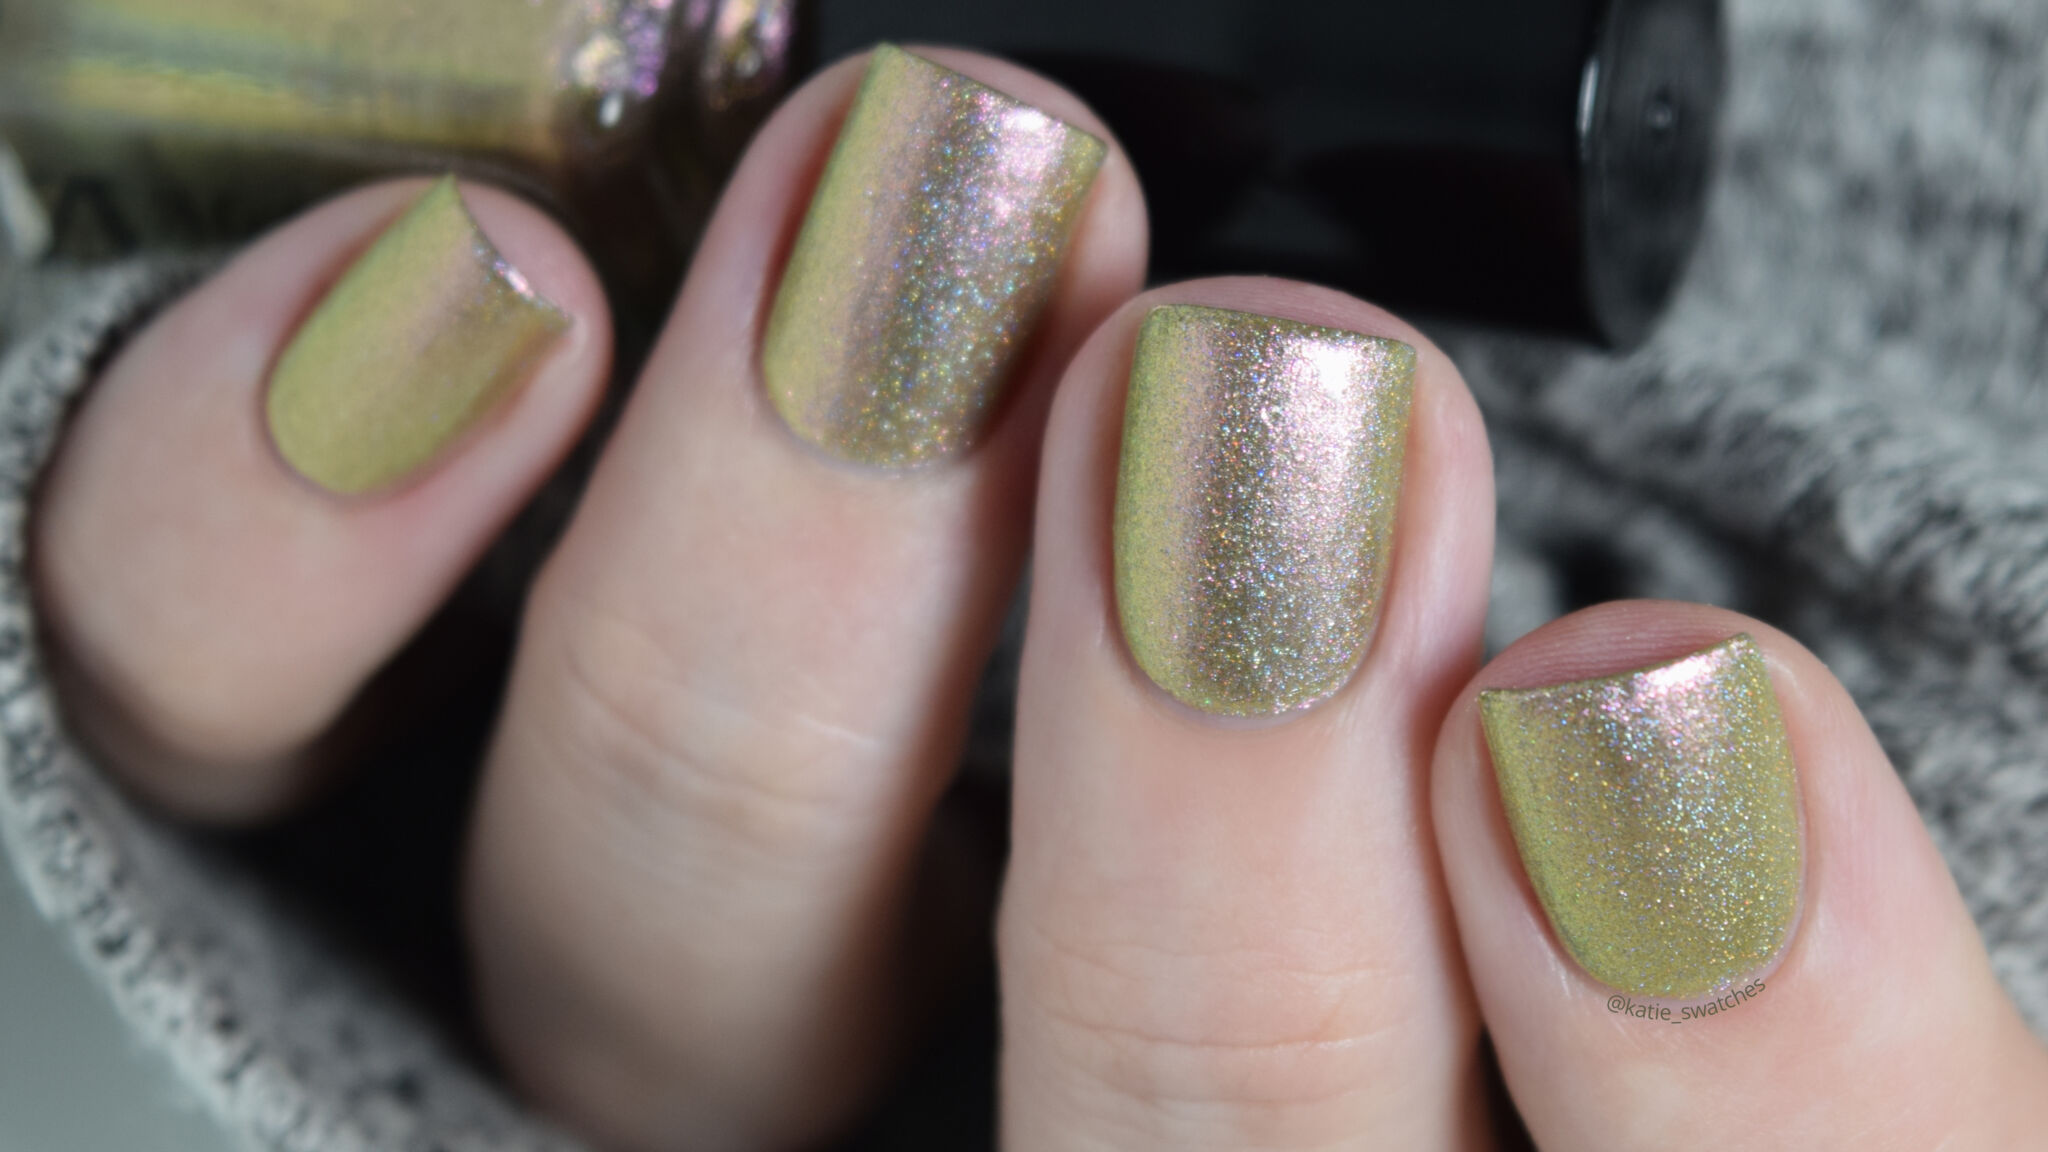 Alchemy Lacquers - Hemlock holographic duochrome nail polish - green to gold to pink - indie polish swatch